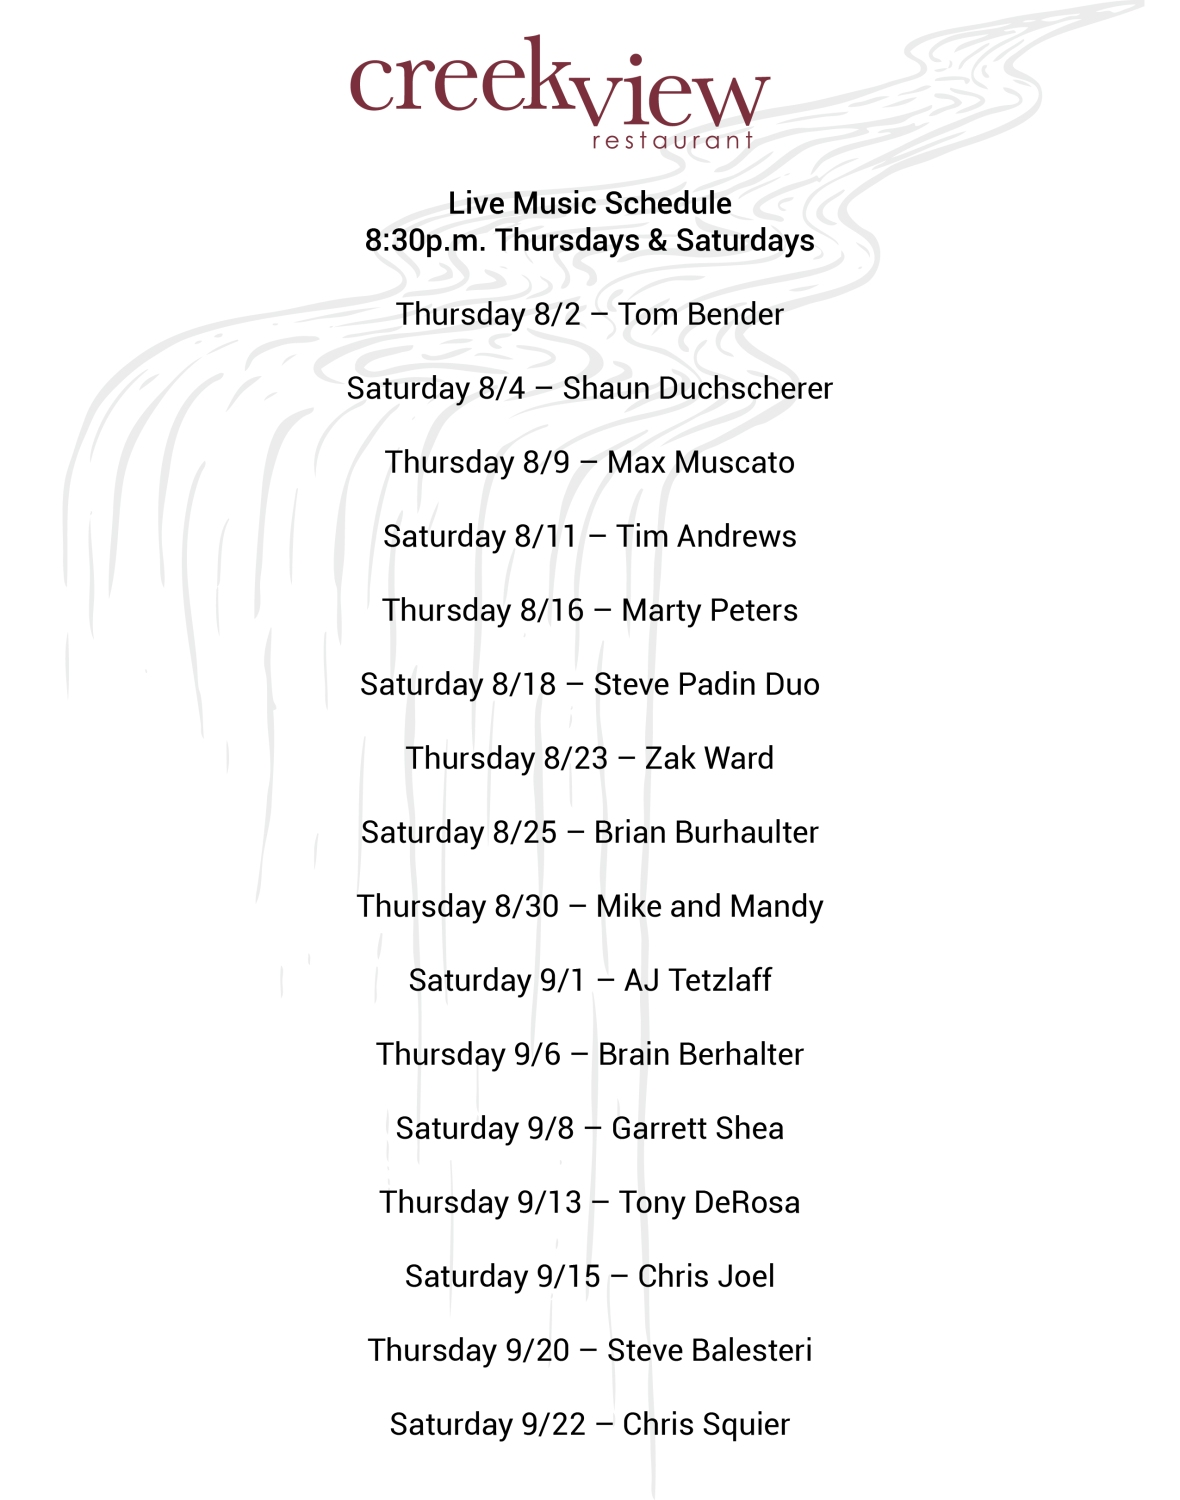 Live Music Schedule Creekview